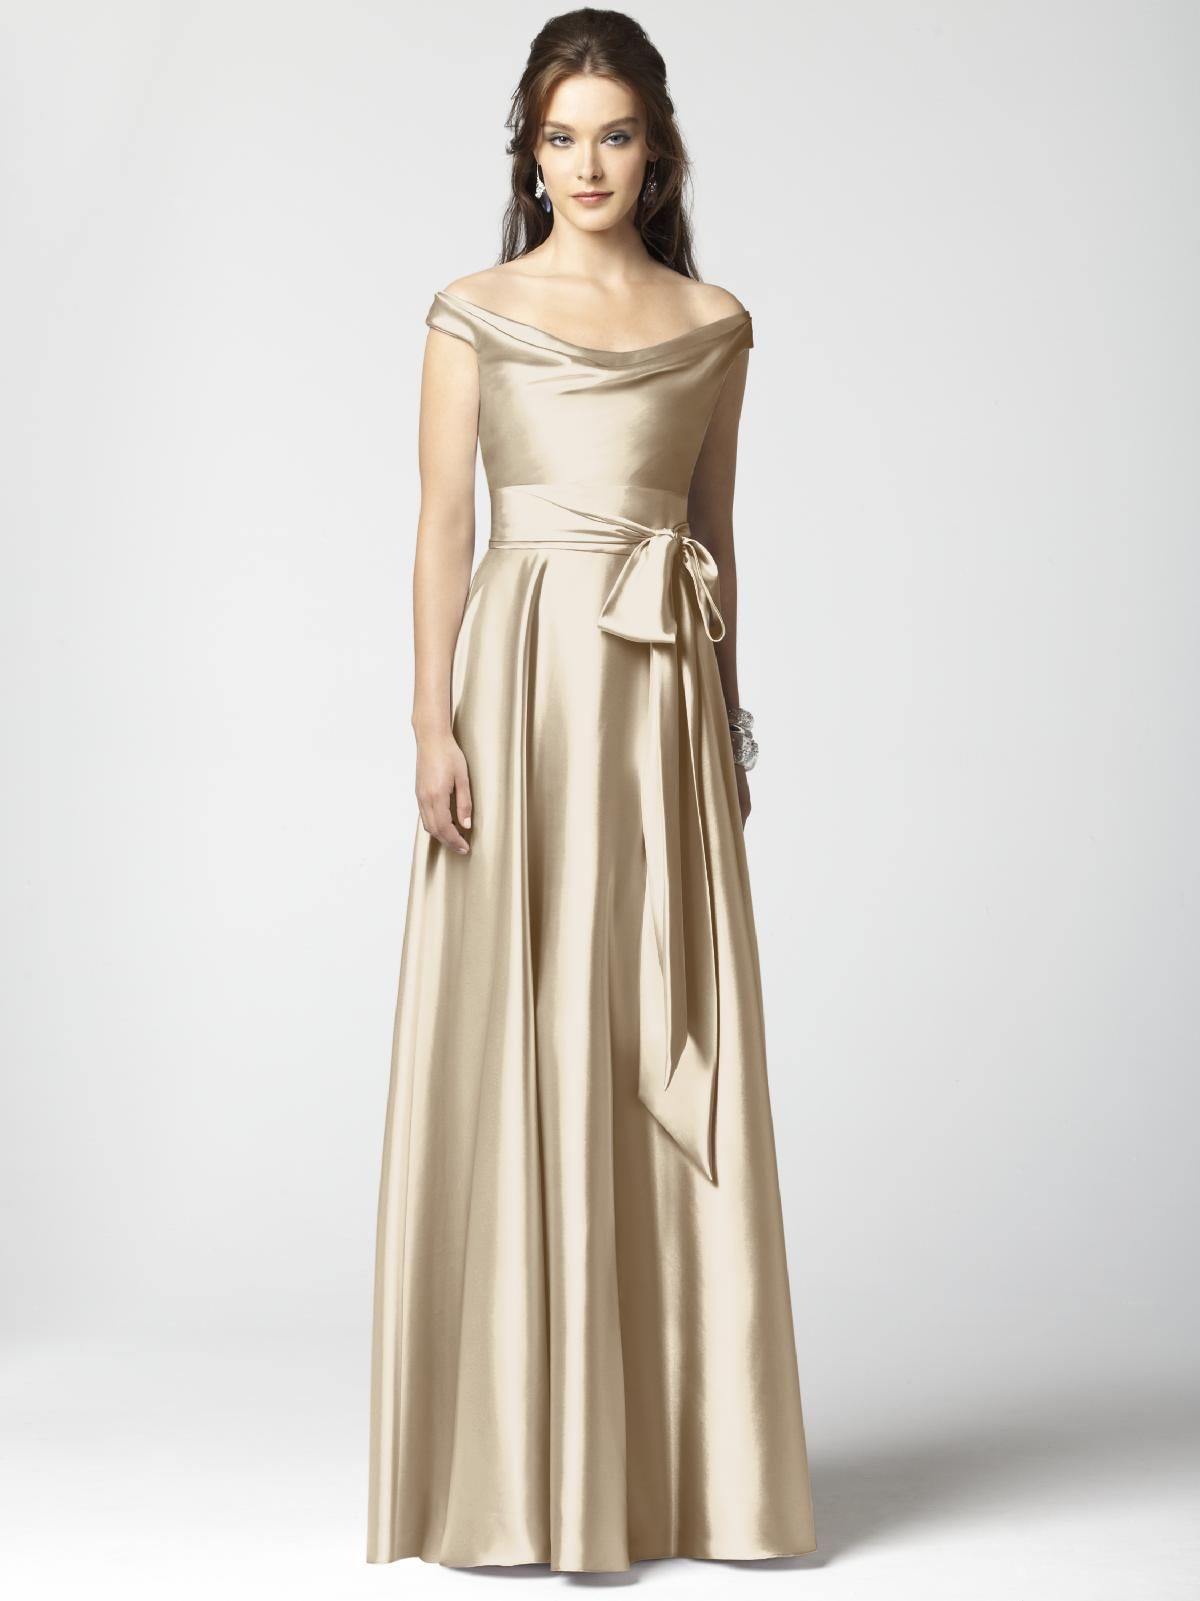 Bmaids for the future pinterest explore gown dress dessy bridesmaid and more ombrellifo Choice Image